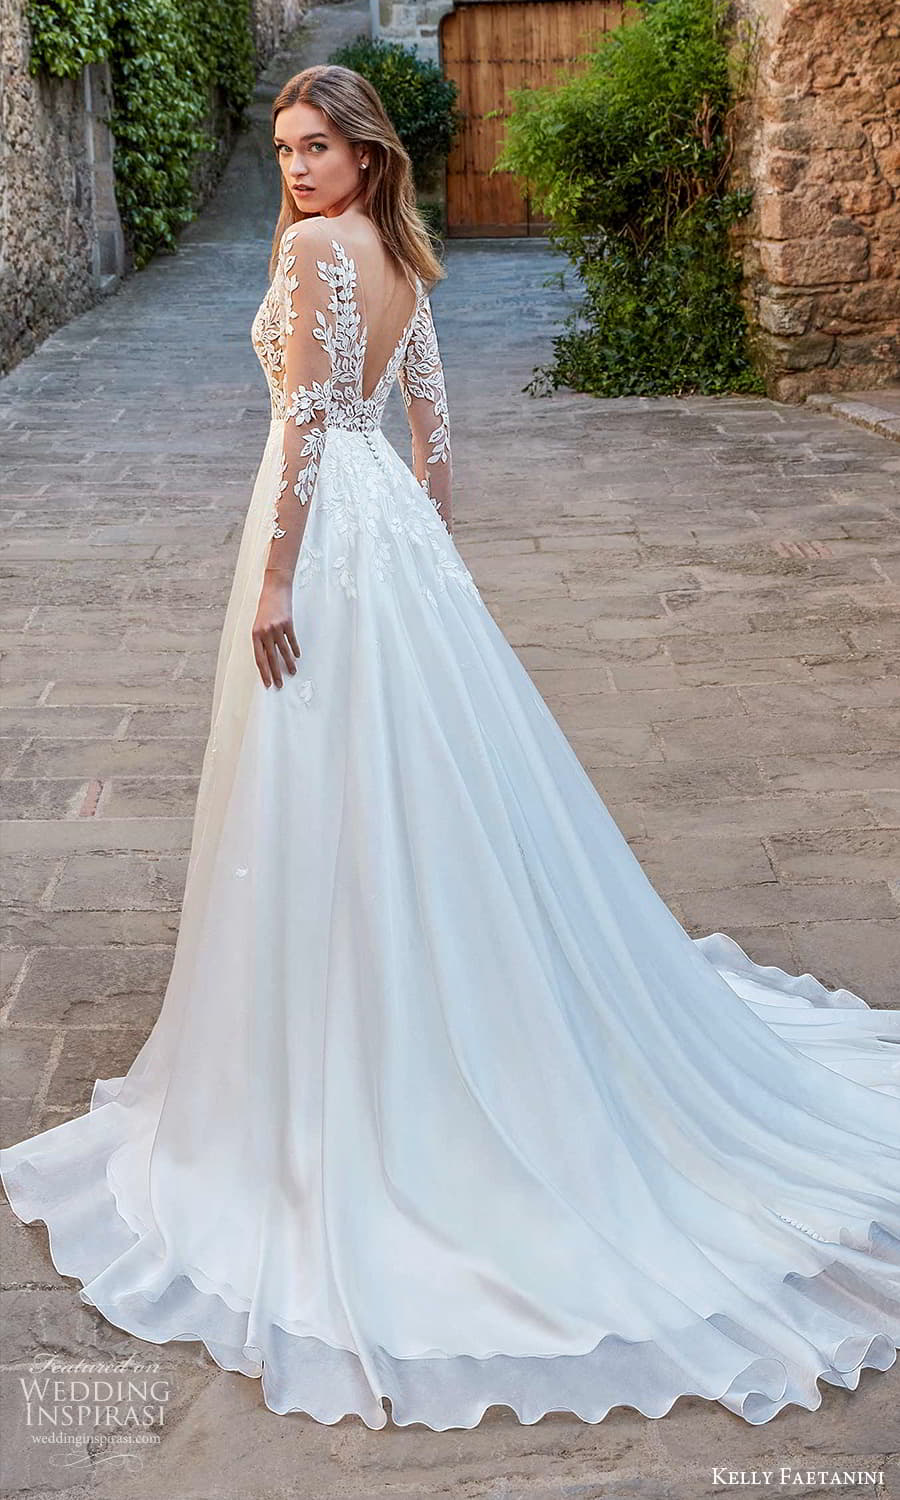 kelly faetanini spring 2022 campaign bridal sheer long sleeve plunging v neckline embellished lace a line ball gown wedding dress chapel train (19) bv